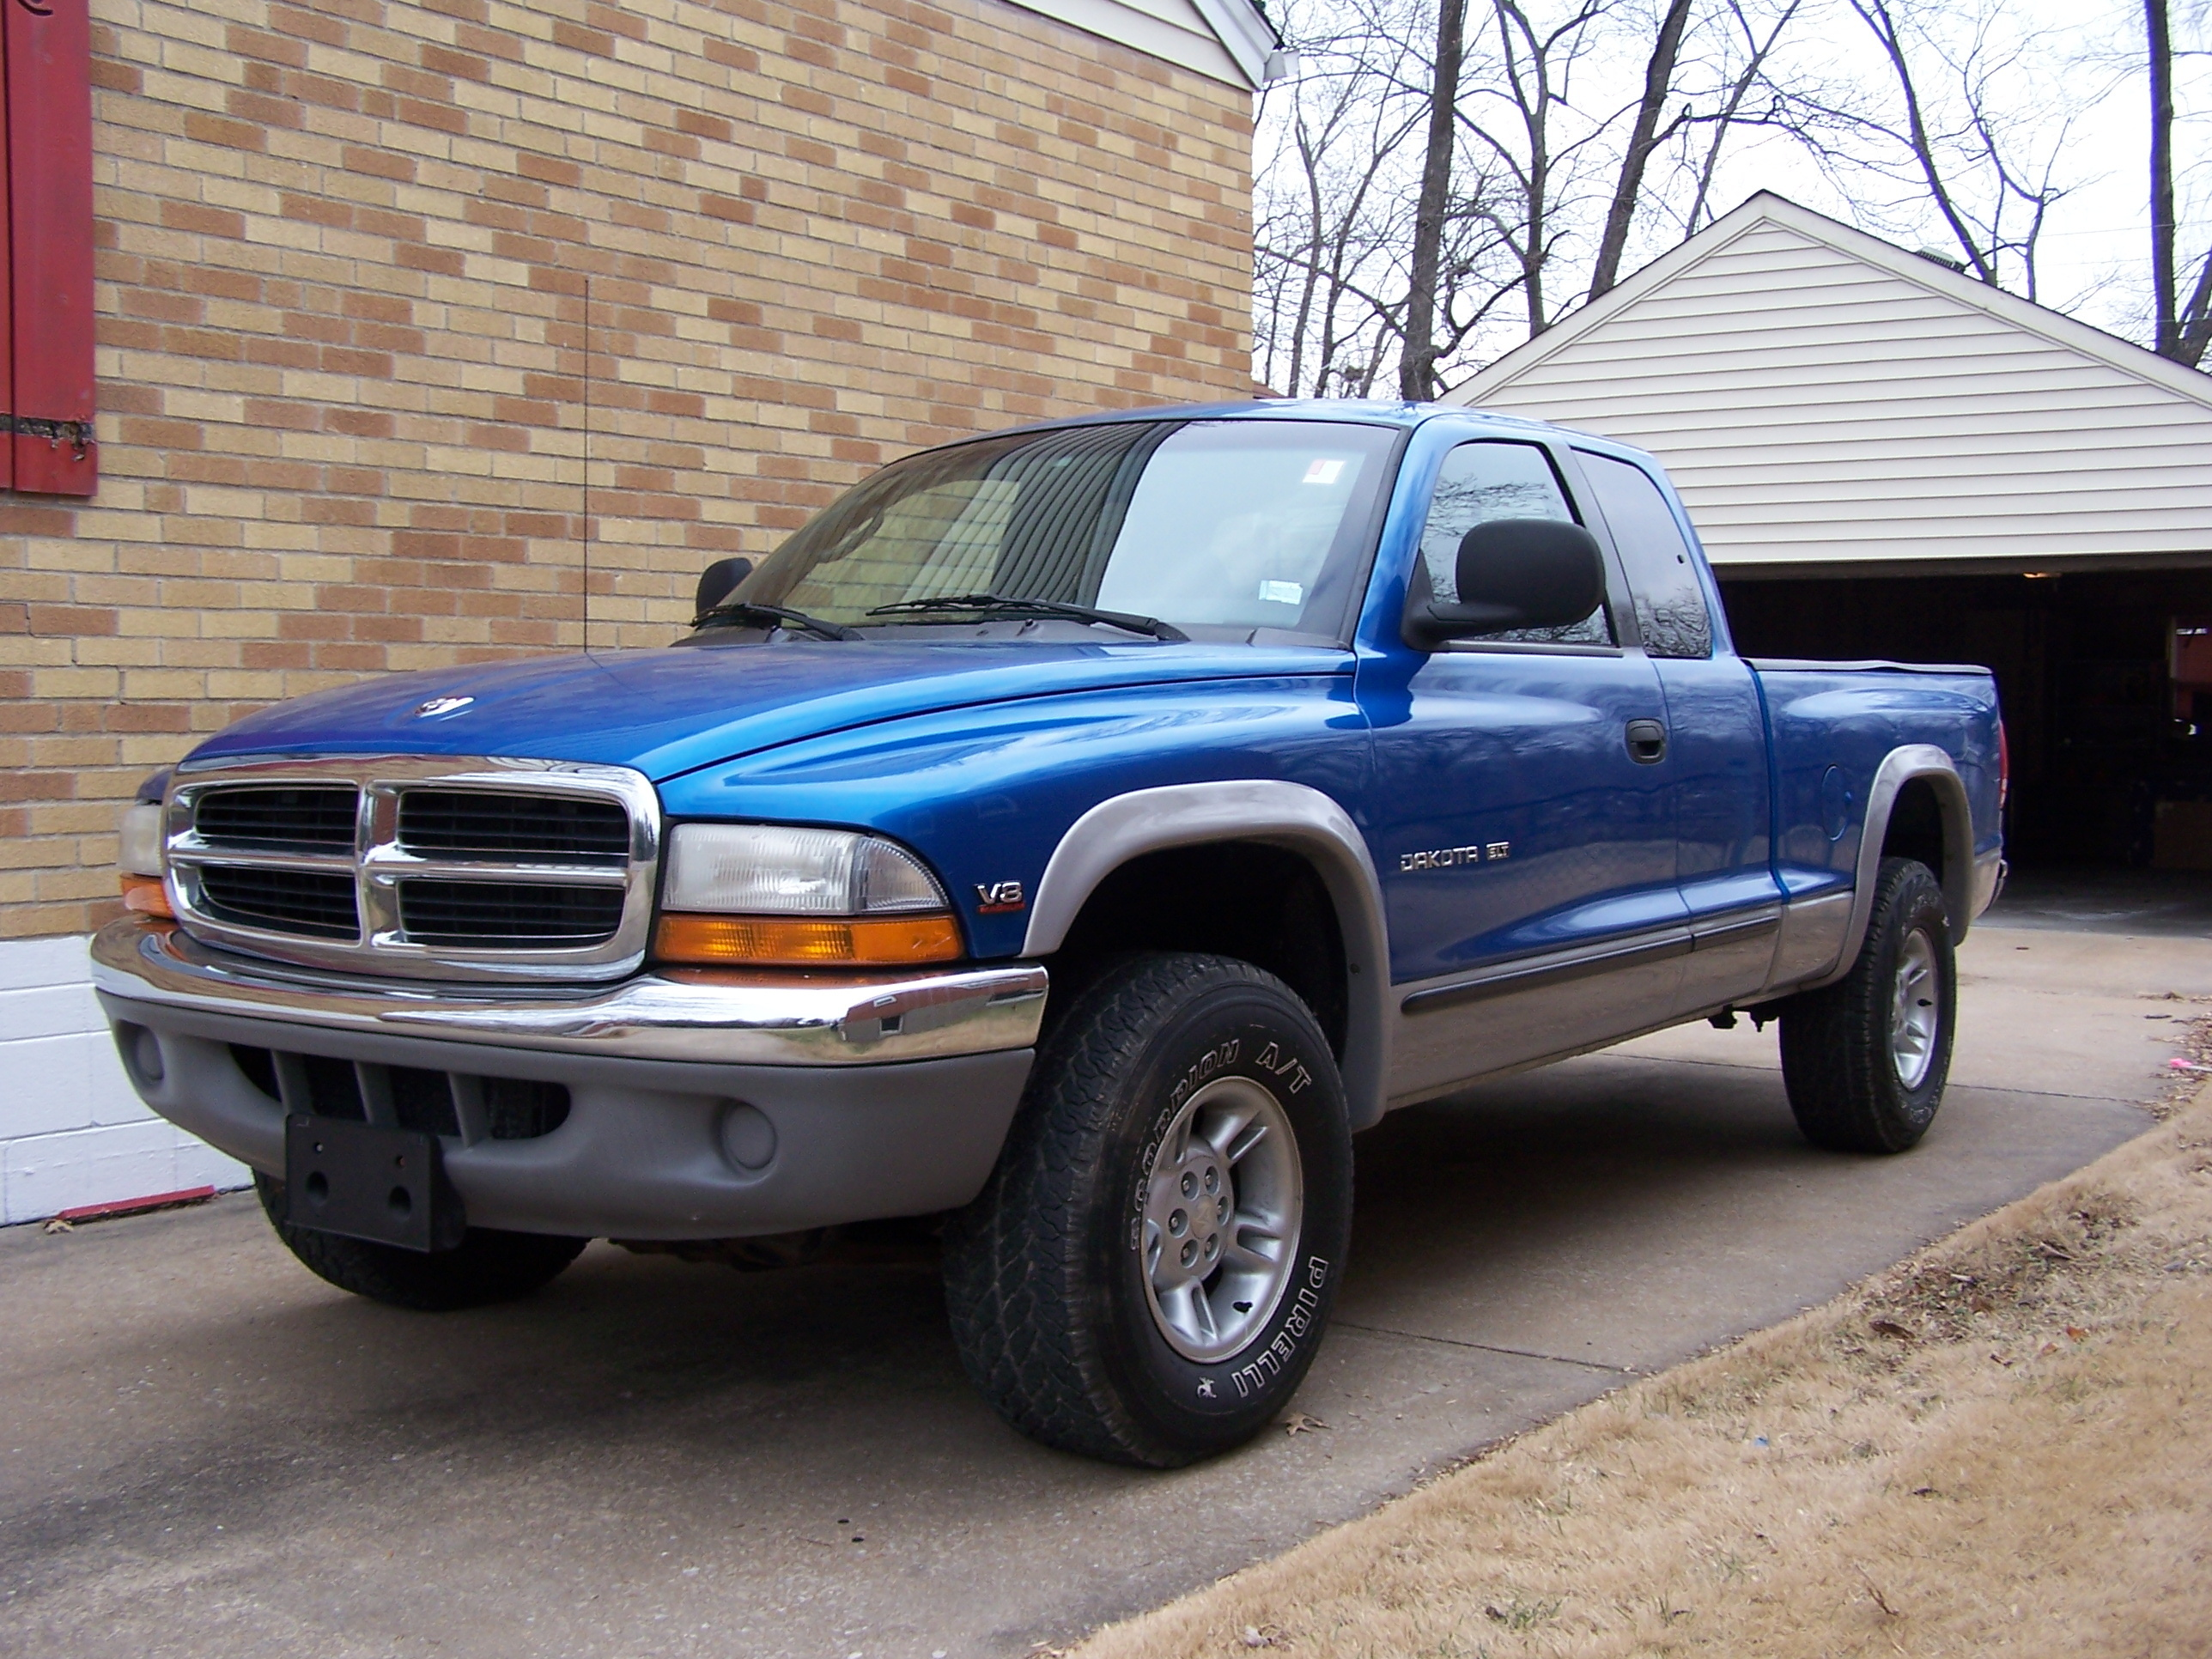 Primenut 1999 Dodge Dakota Regular Cab Amp Chassis Specs